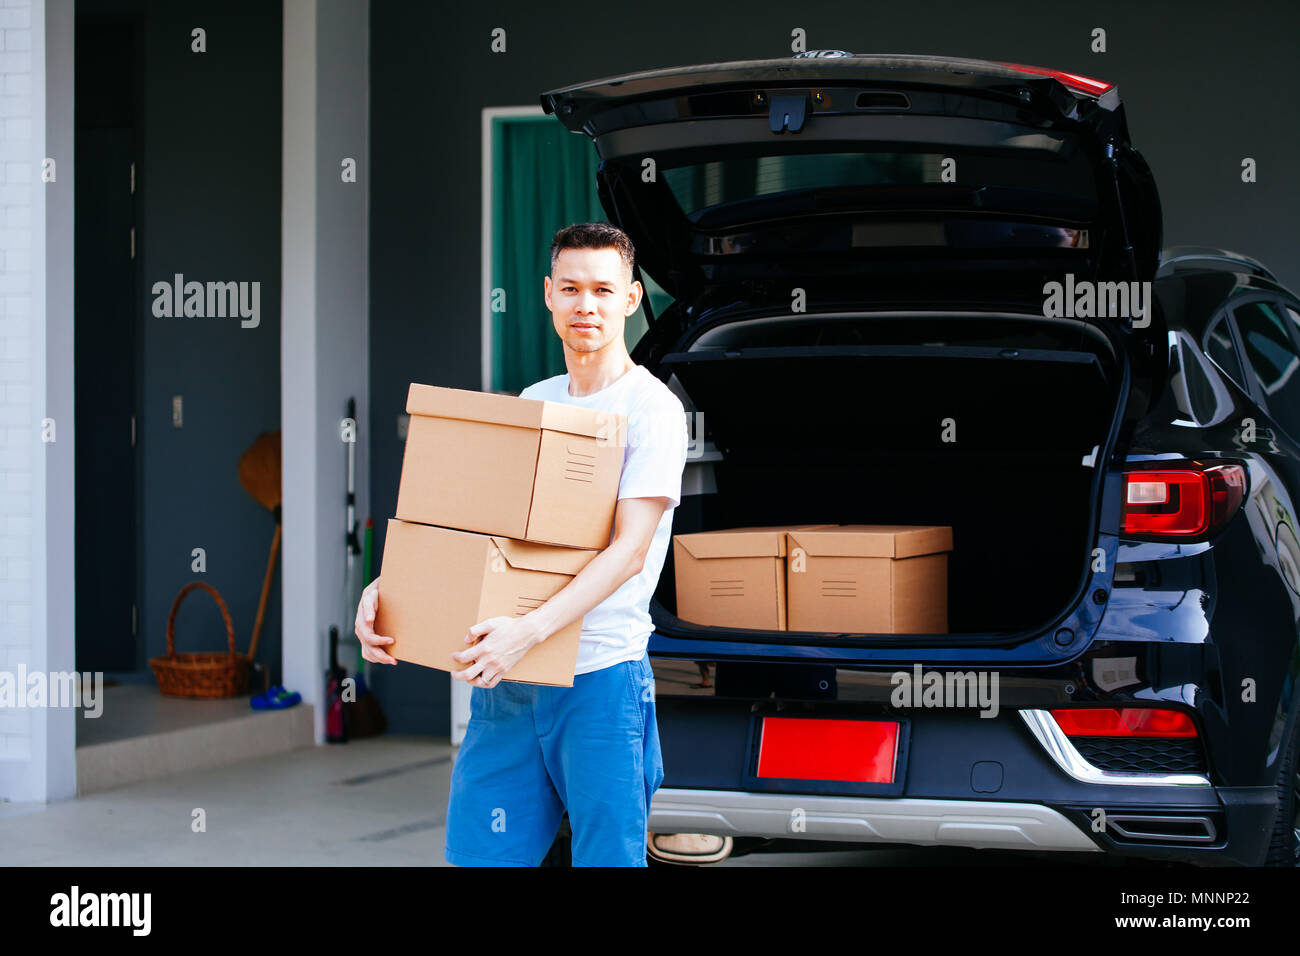 Mature Asian man carrying cardboard boxes from car trunk at new home - Stock Image